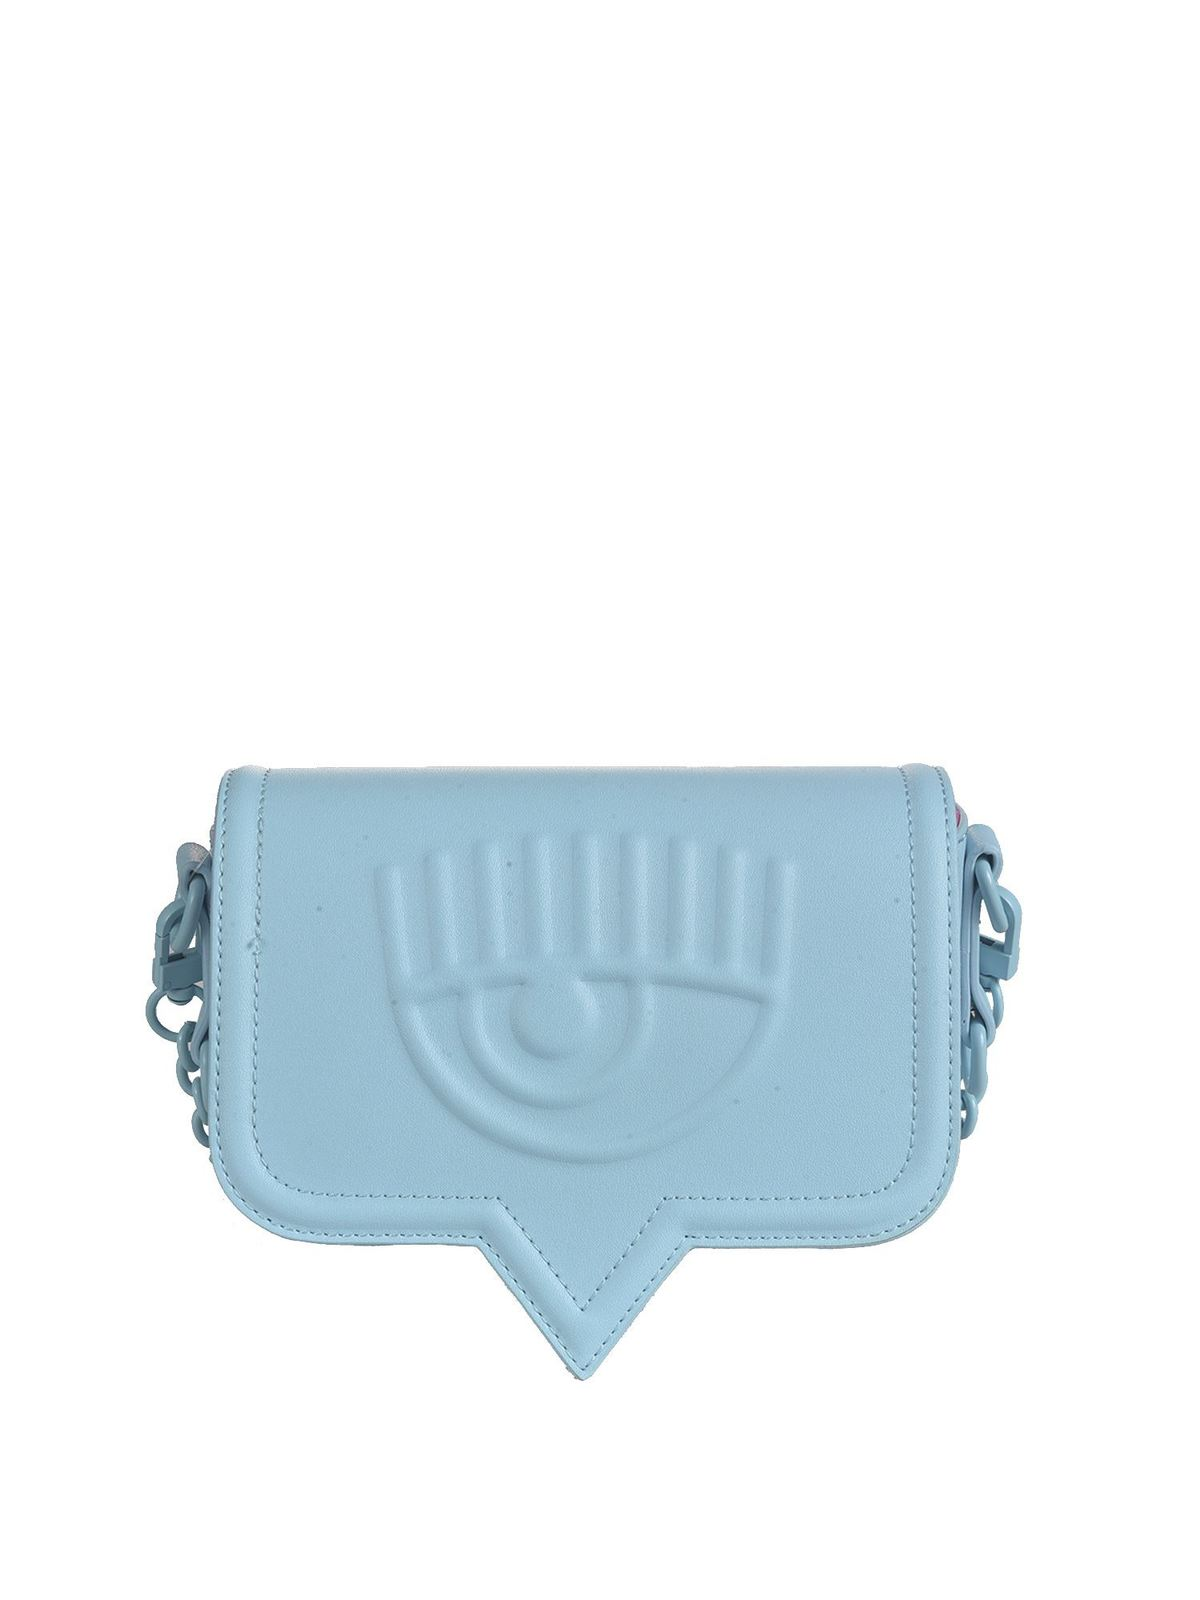 Chiara Ferragni EYELIKE SMALL SHOULDER BAG IN LIGHT BLUE